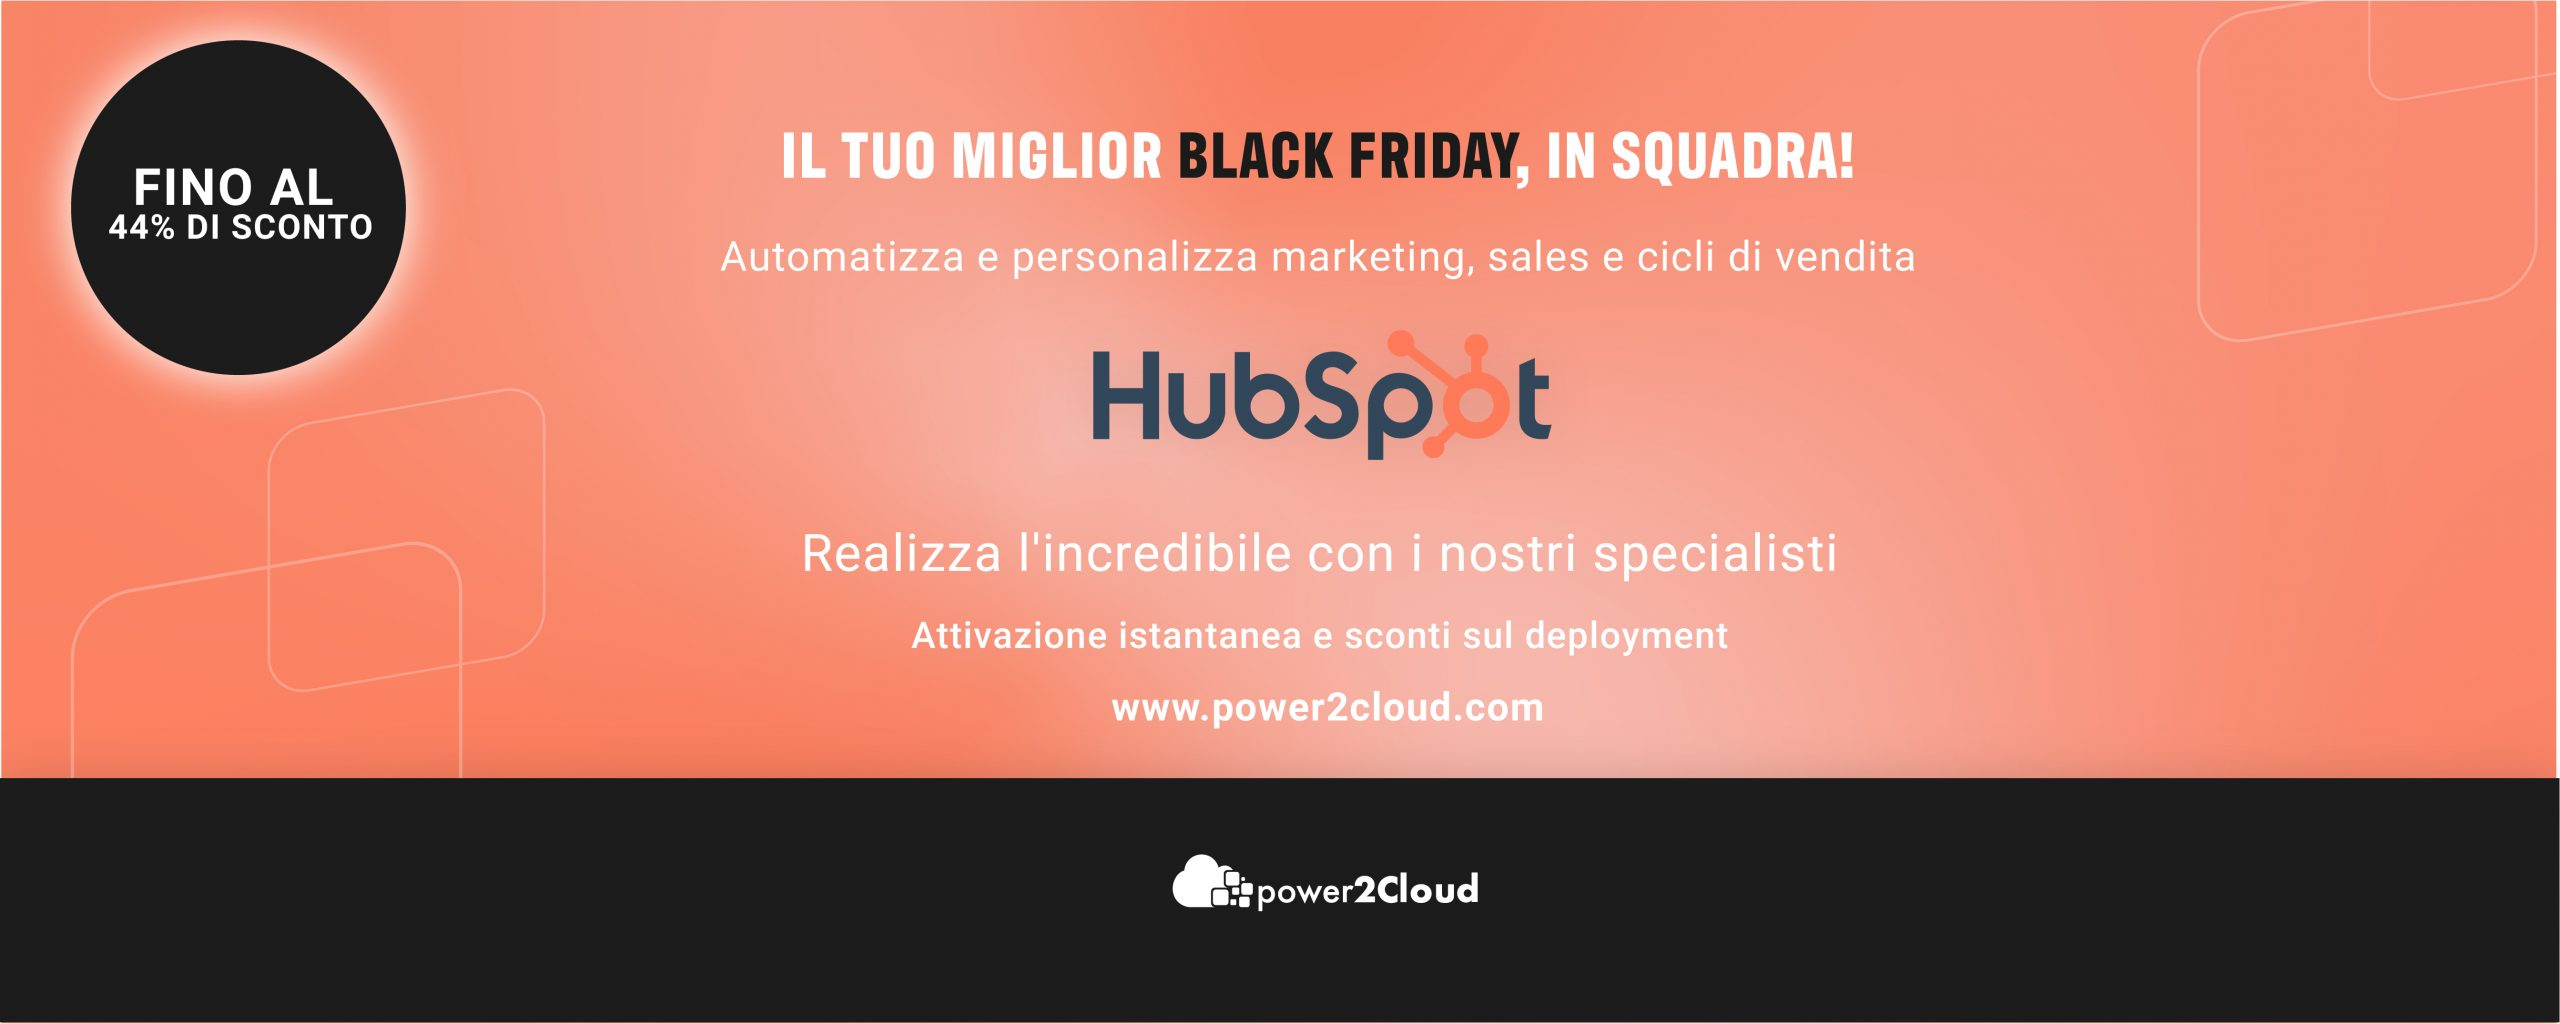 Perché hai bisogno di un CRM e di un software marketing all in one come HubSpot